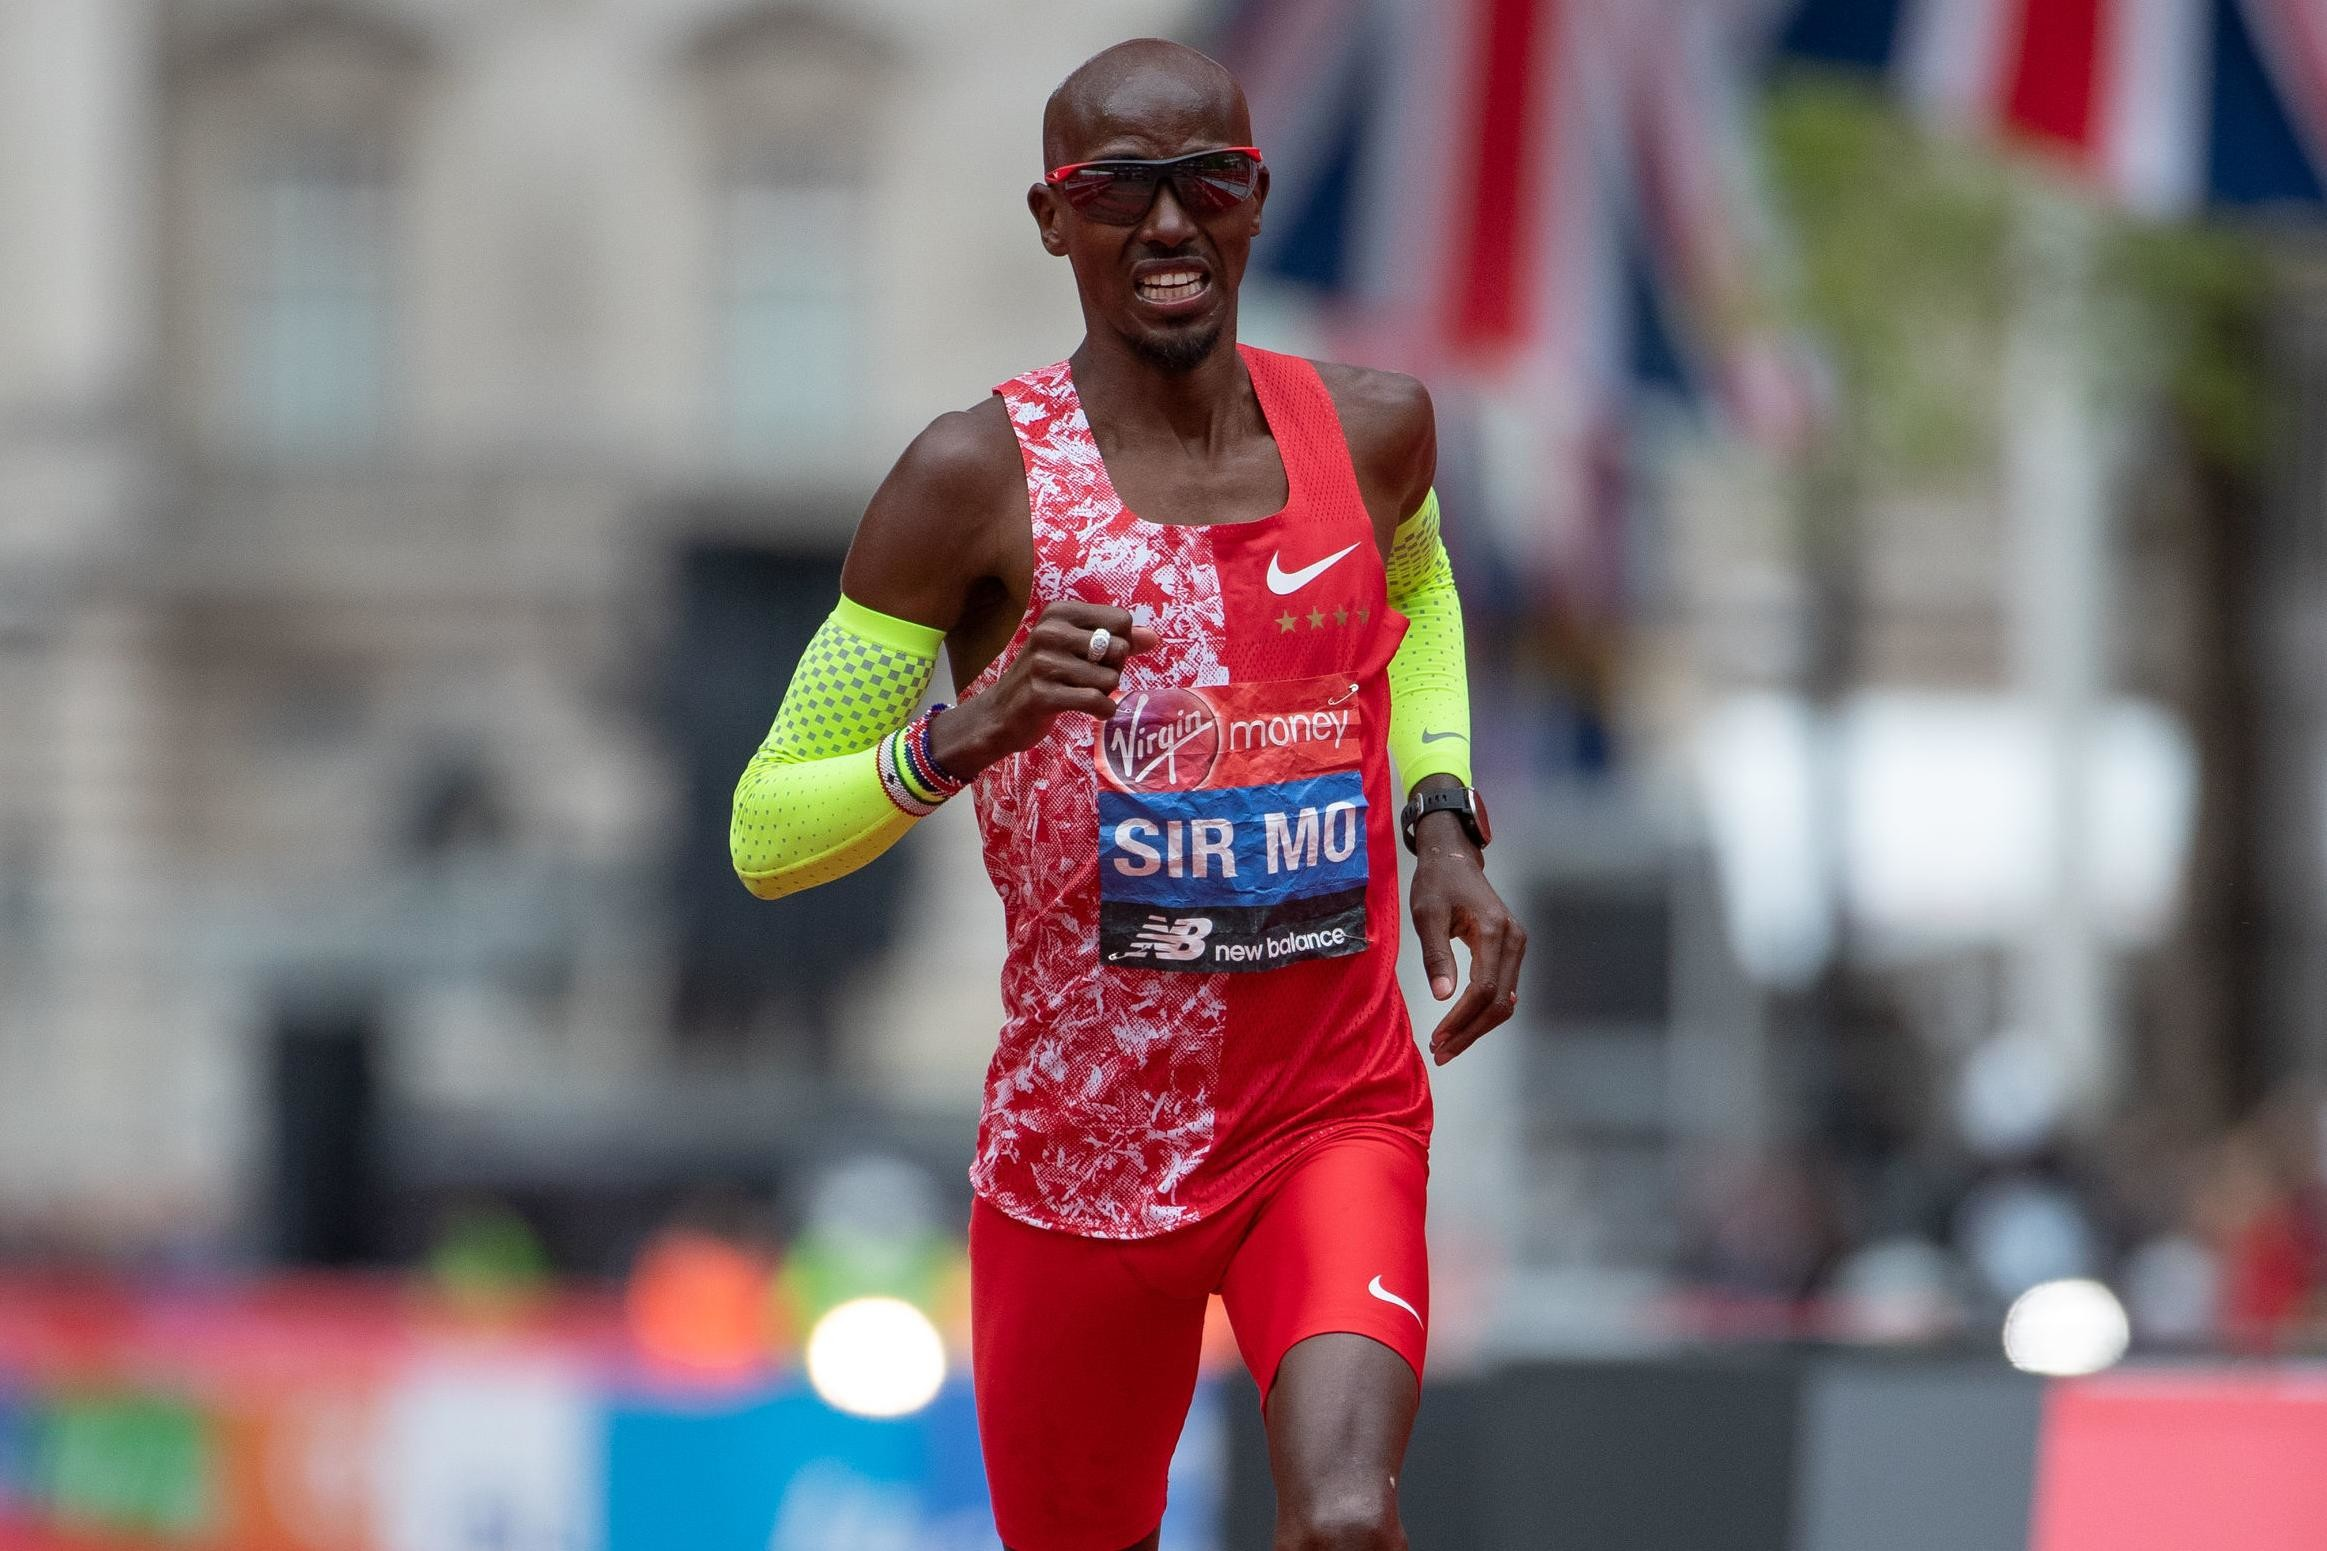 Mo Farah will be the pacemaker for the elite men's race at October's rescheduled London Marathon